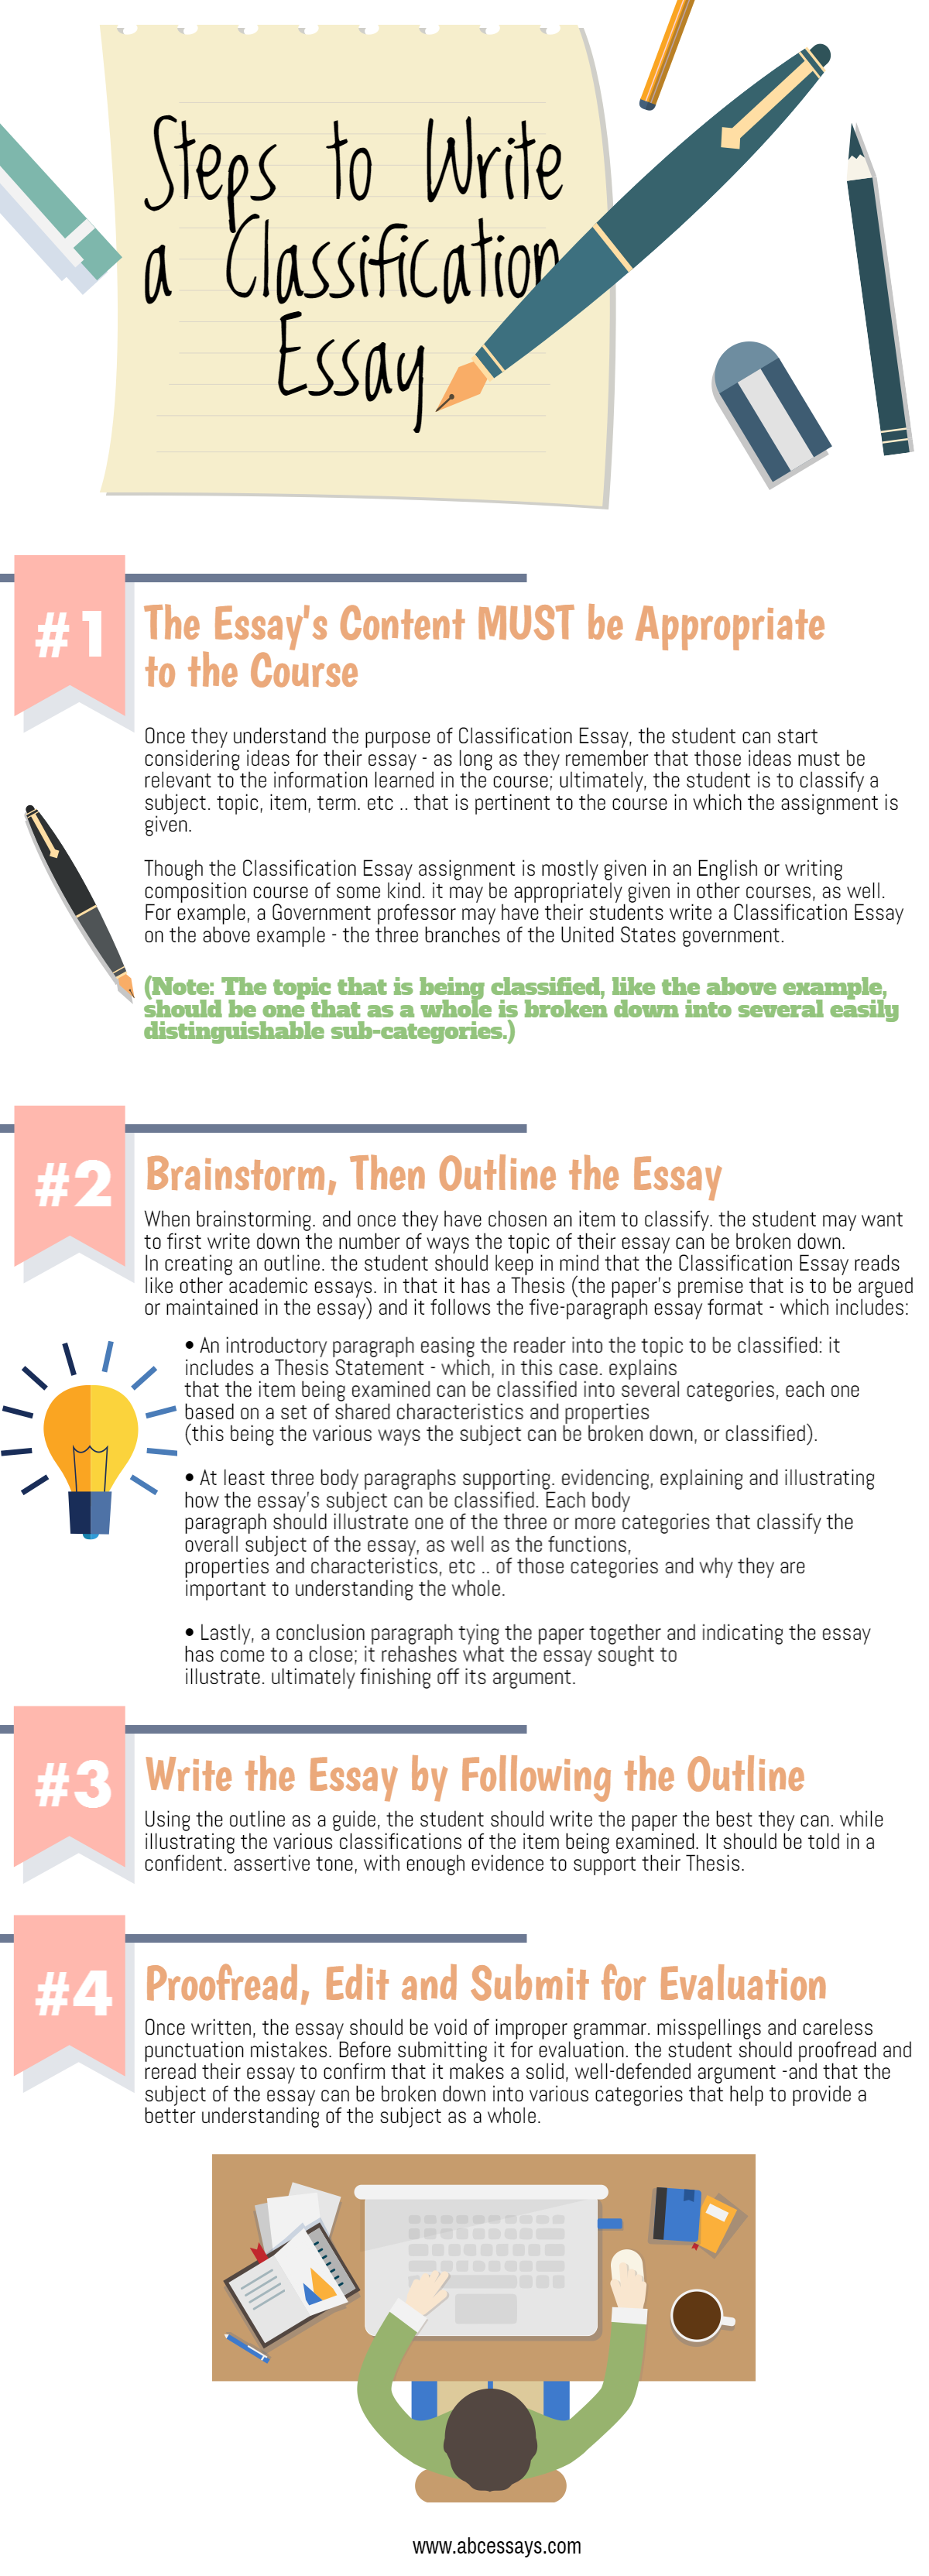 easy classification essay topics english essay topics for students  how to write classification essay division essay examples division essay example classification and division essay classification